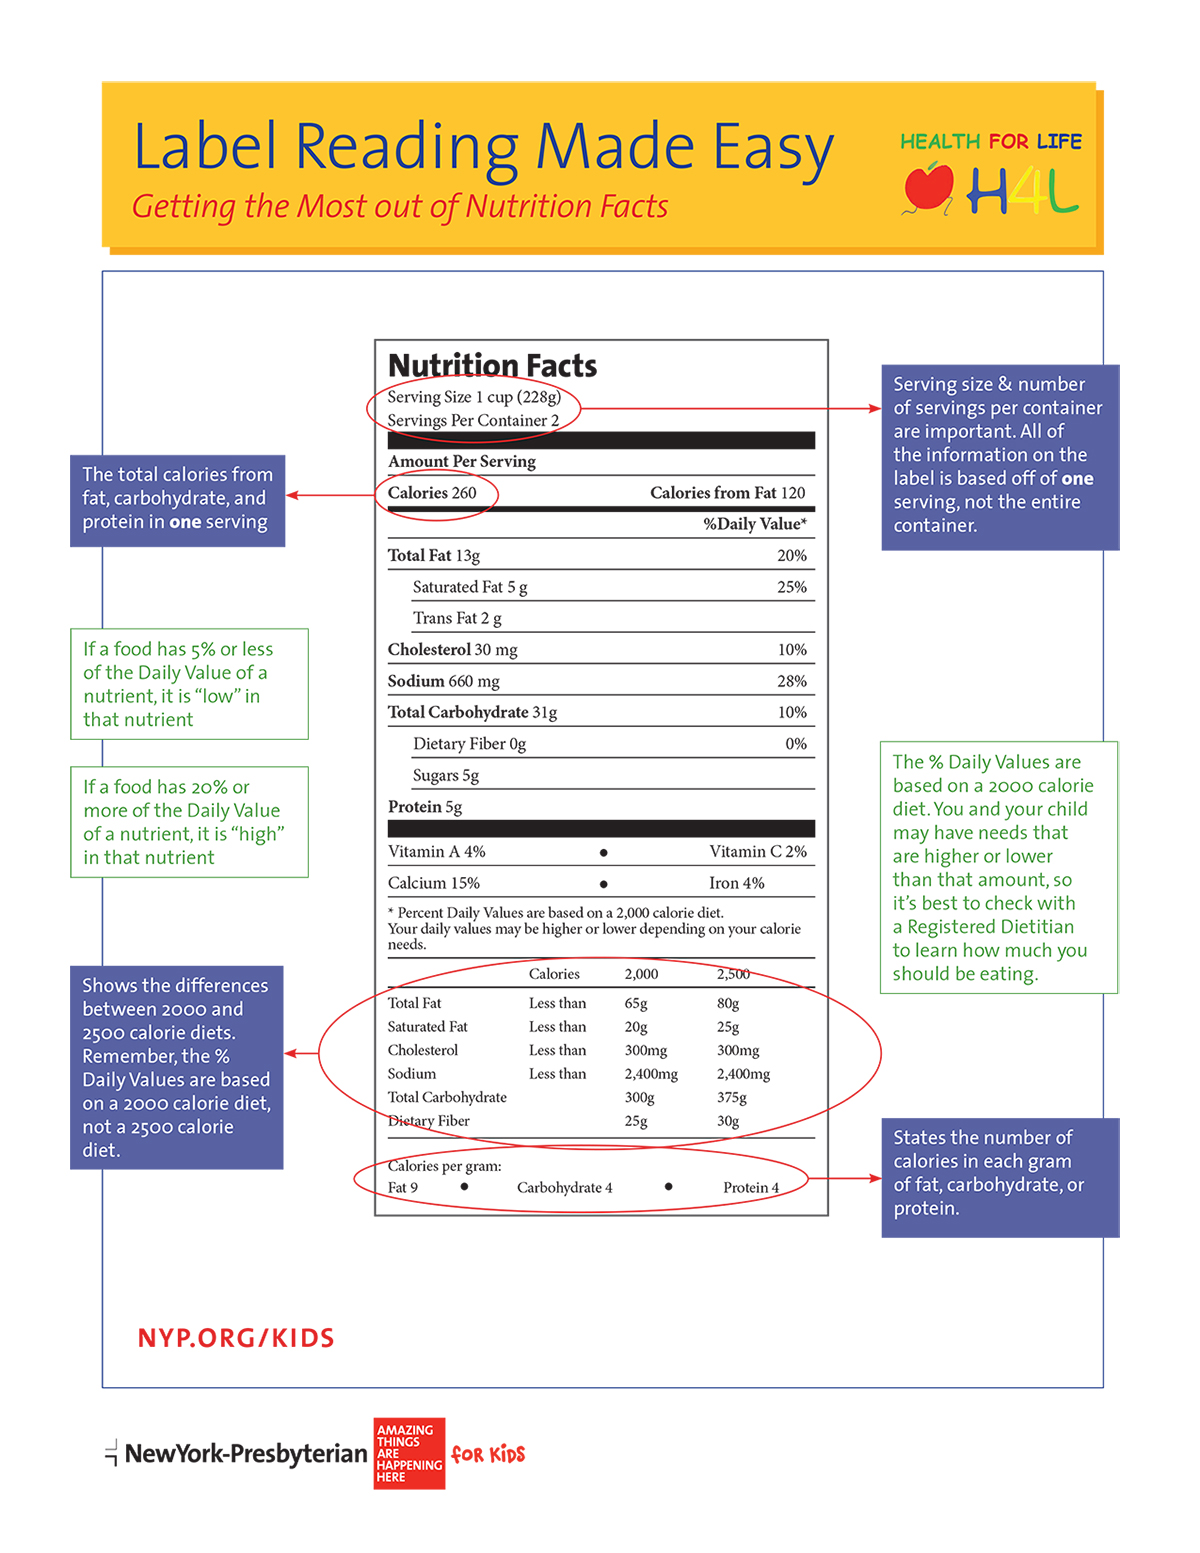 Label Reading Made Easy: Getting the Most out of Nutrition Facts